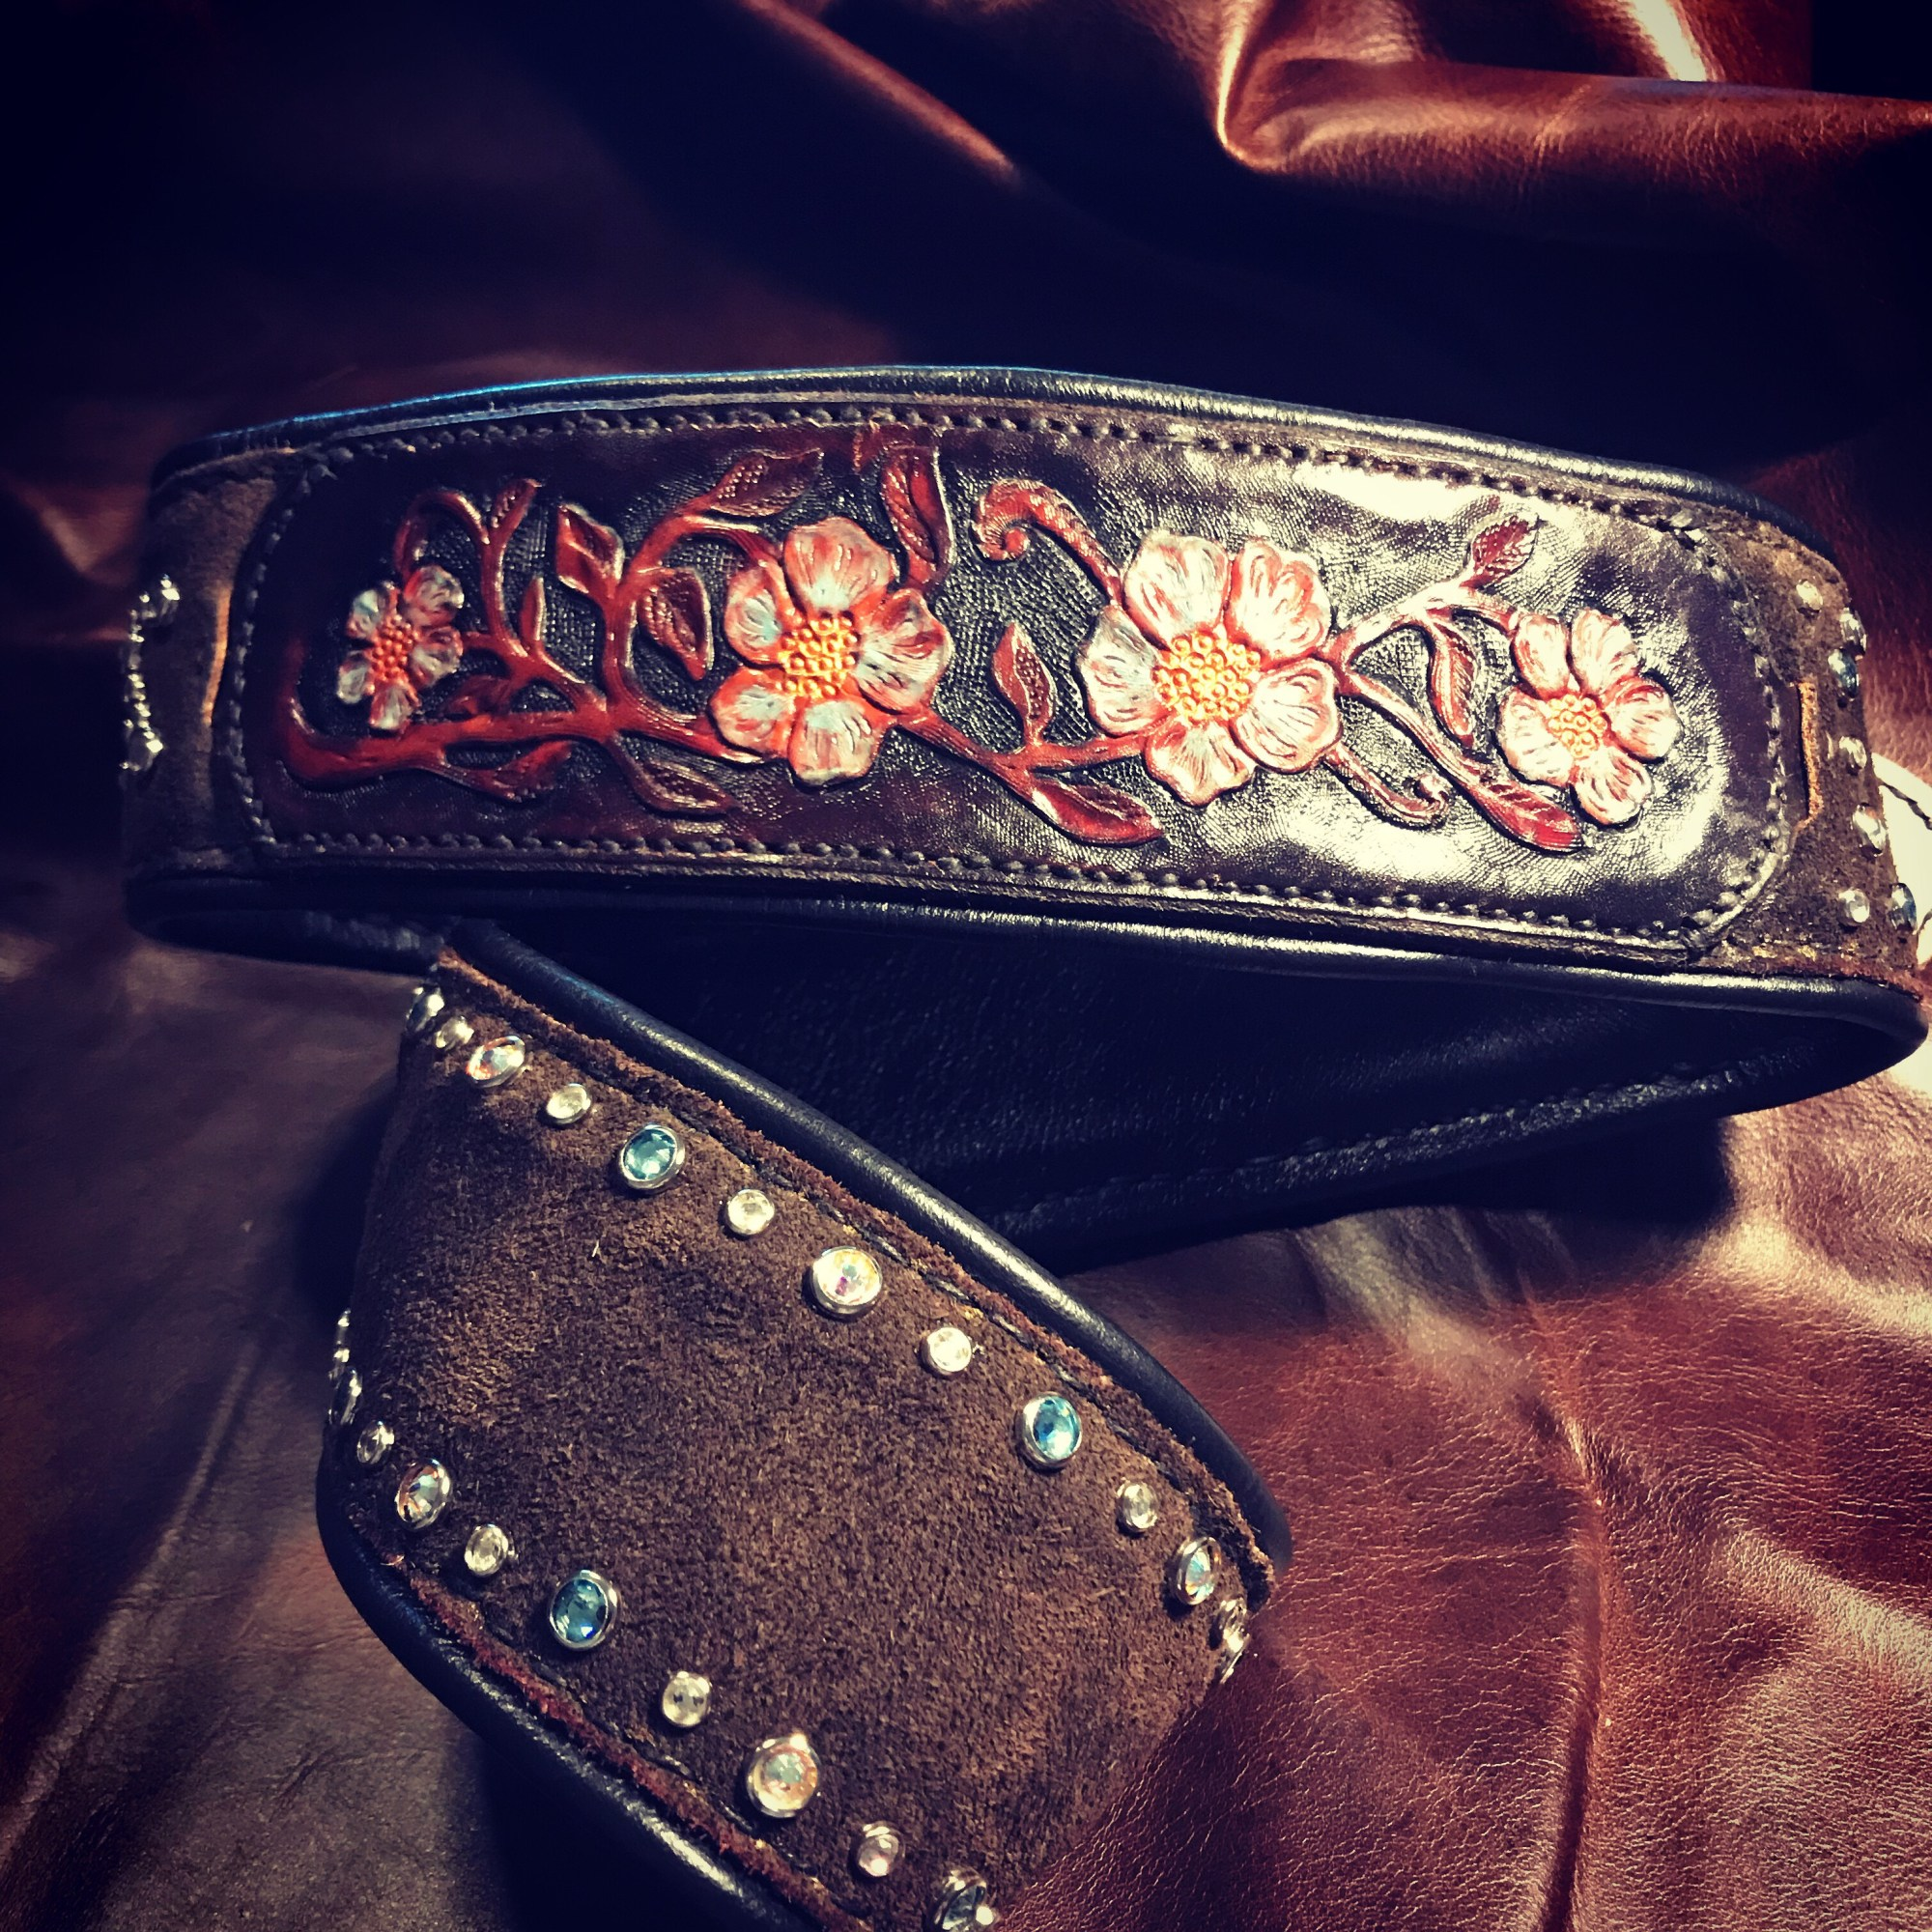 Custom Artist Series Guitar Strap featuring Tooled Panels and Swaroski Crystals on Chocolate Brown Suede by Designer Leatherworks